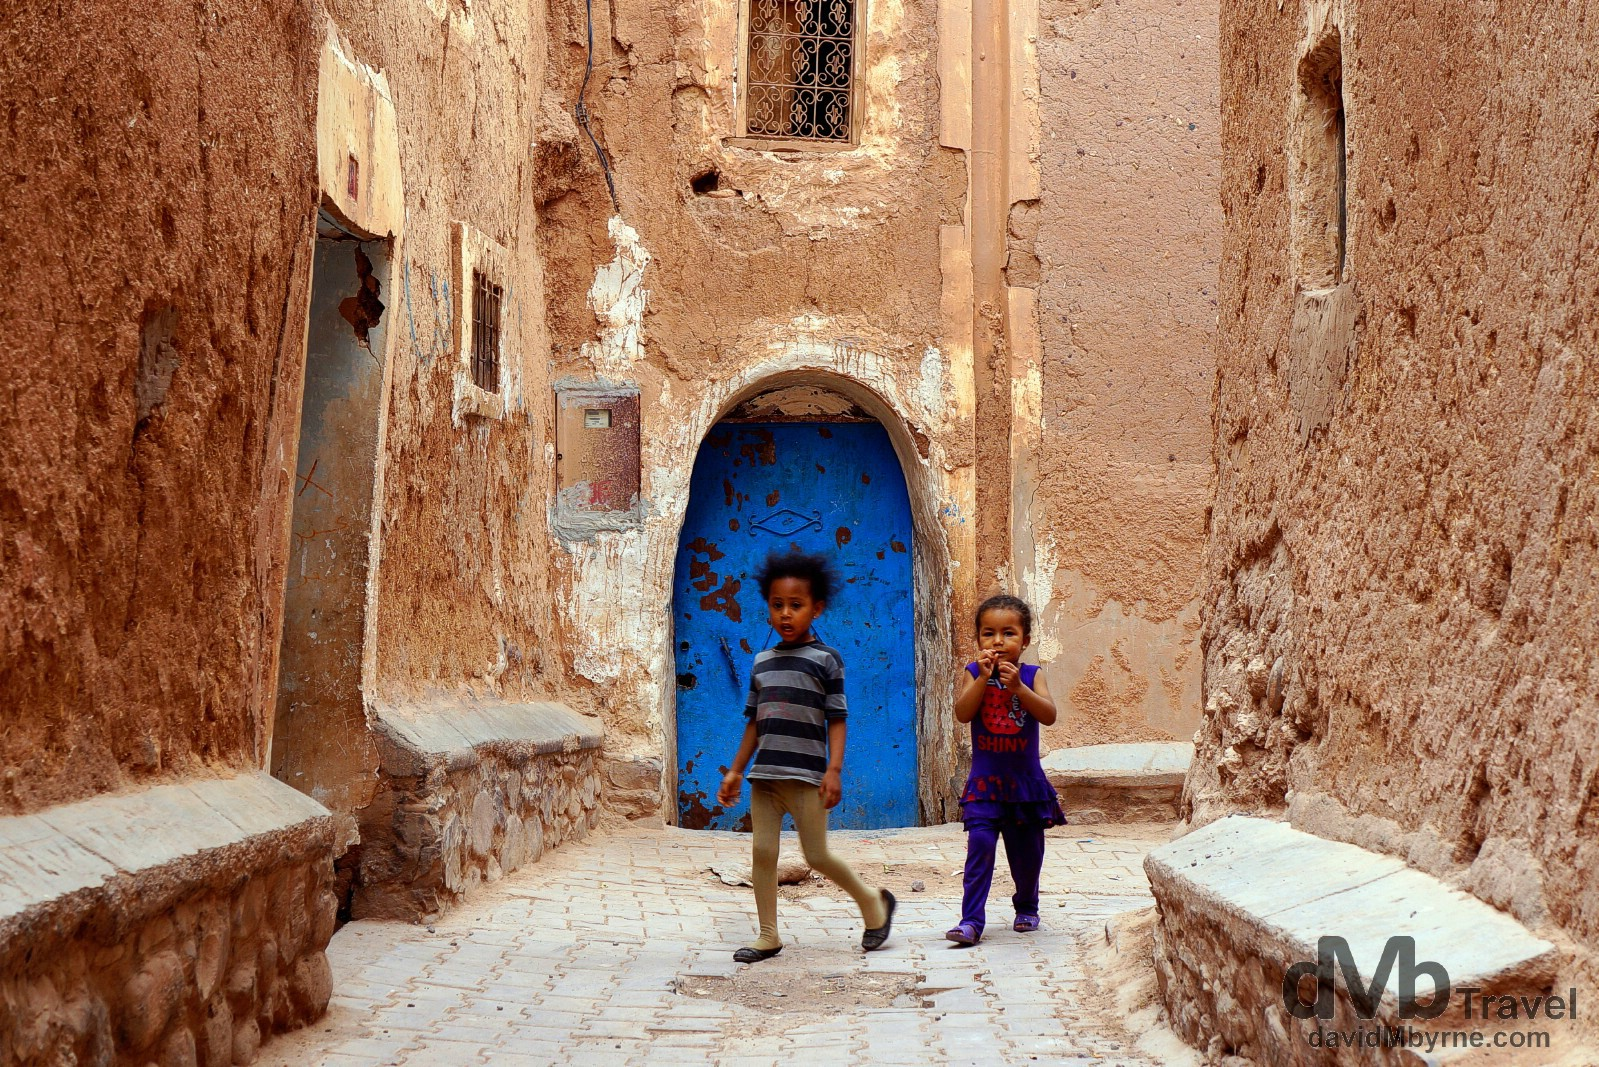 Kids in the lanes of the Kasbah Taourirt in Ouarzazate, Morocco. May 13th, 2014.